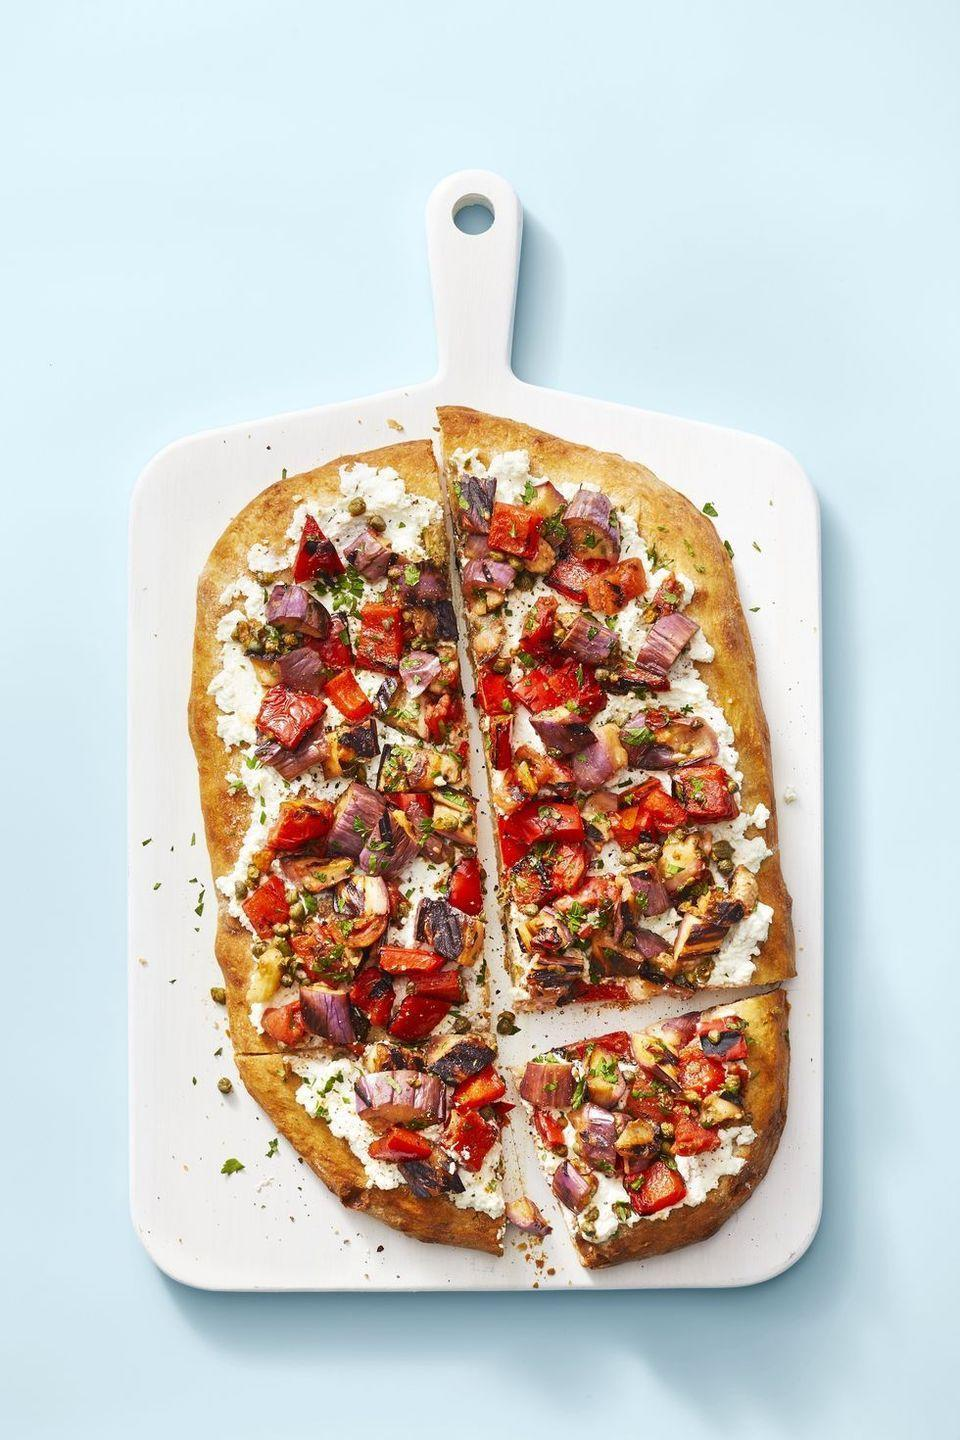 "<p>Yep, sweet and vinegary eggplant is the flavor-packed <a href=""https://www.goodhousekeeping.com/food-recipes/cooking/a32714182/how-to-make-pizza-at-home-recipe/"" rel=""nofollow noopener"" target=""_blank"" data-ylk=""slk:pizza"" class=""link rapid-noclick-resp"">pizza</a> topping you've been looking for.</p><p><em><a href=""https://www.goodhousekeeping.com/food-recipes/easy/a28210300/caponata-flatbread-recipe/"" rel=""nofollow noopener"" target=""_blank"" data-ylk=""slk:Get the recipe for Caponata Flatbread »"" class=""link rapid-noclick-resp"">Get the recipe for Caponata Flatbread »</a></em></p>"